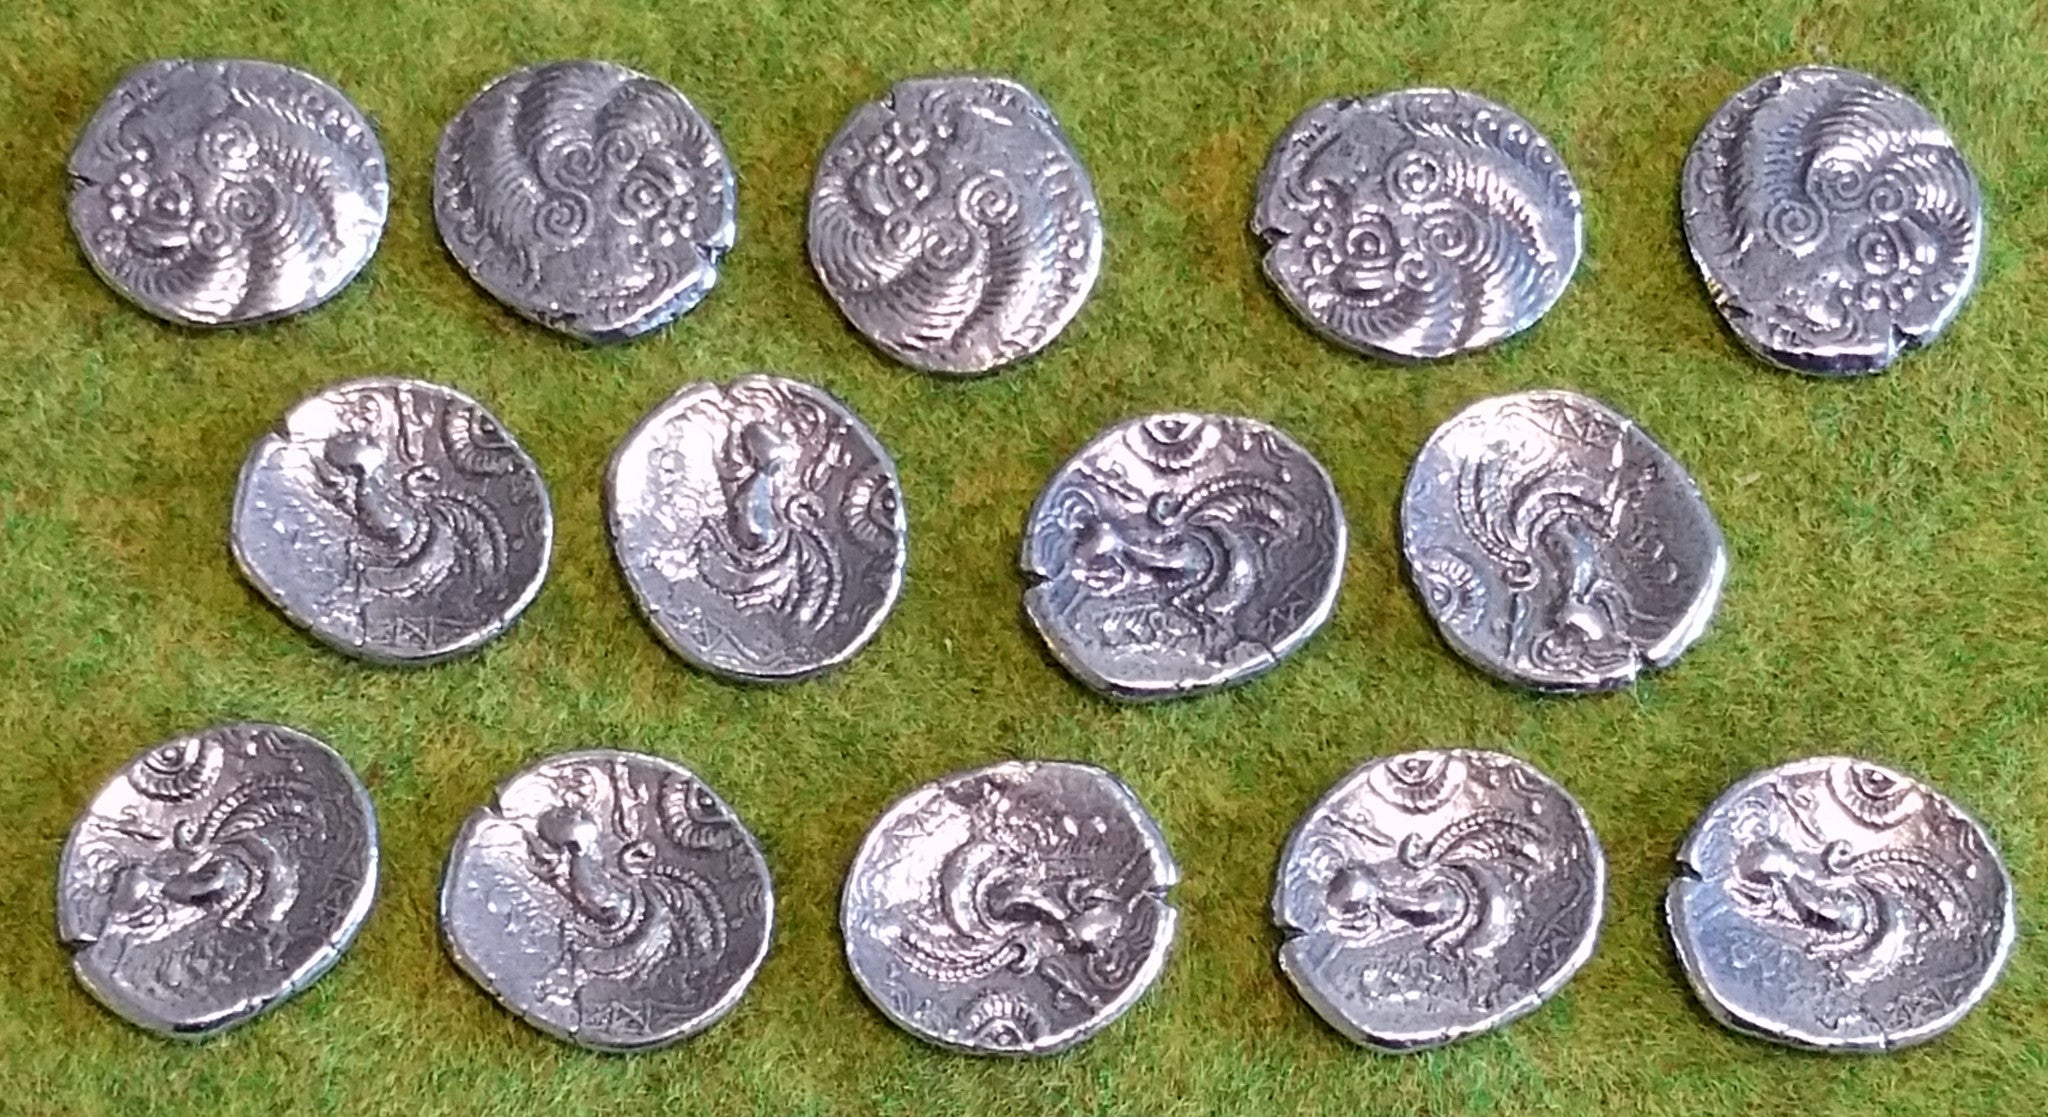 Armorican silver staters!